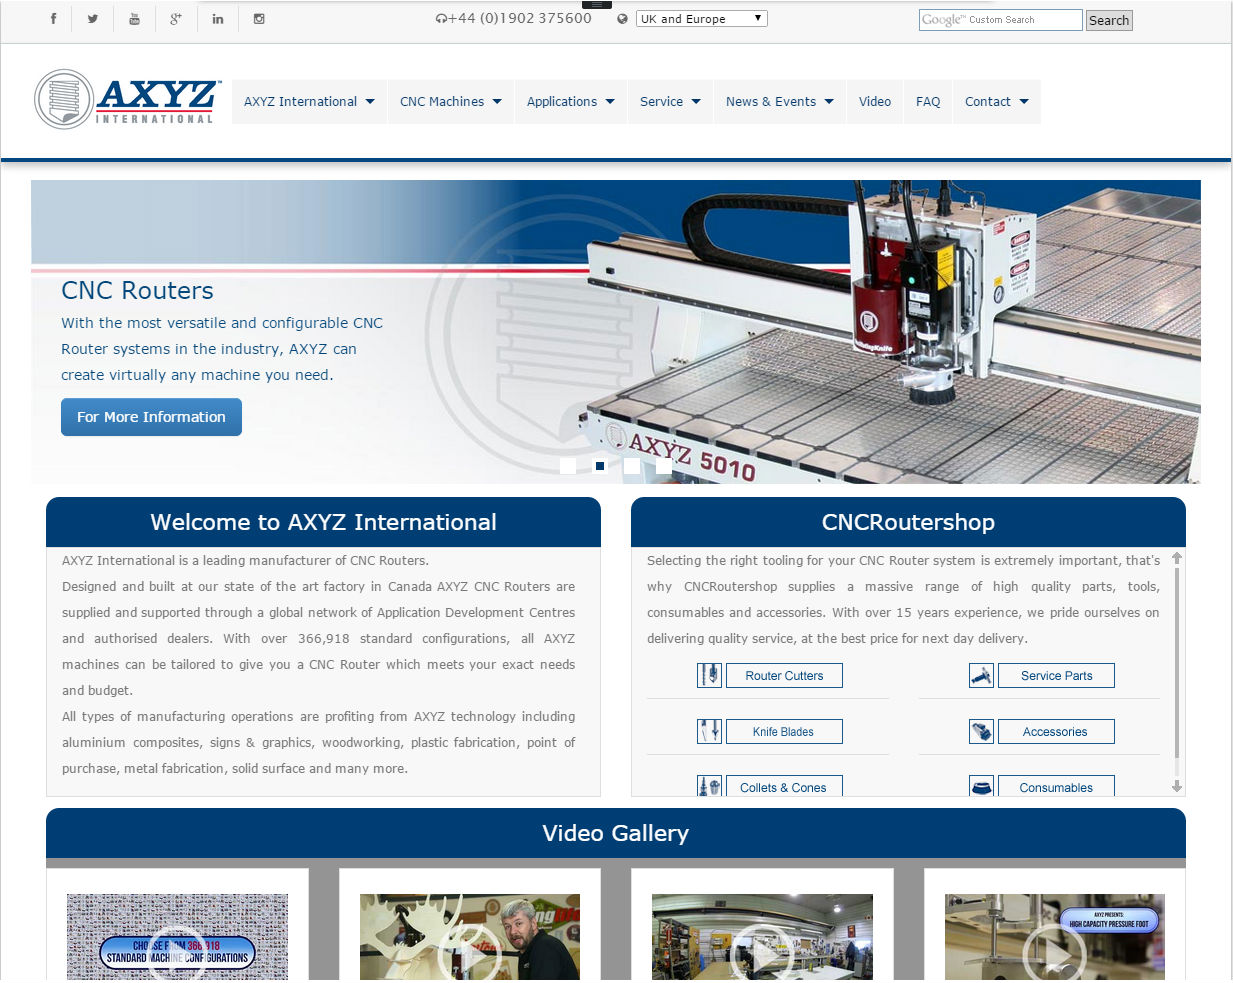 cleartarn website - AXYZ International CNC Router Systems